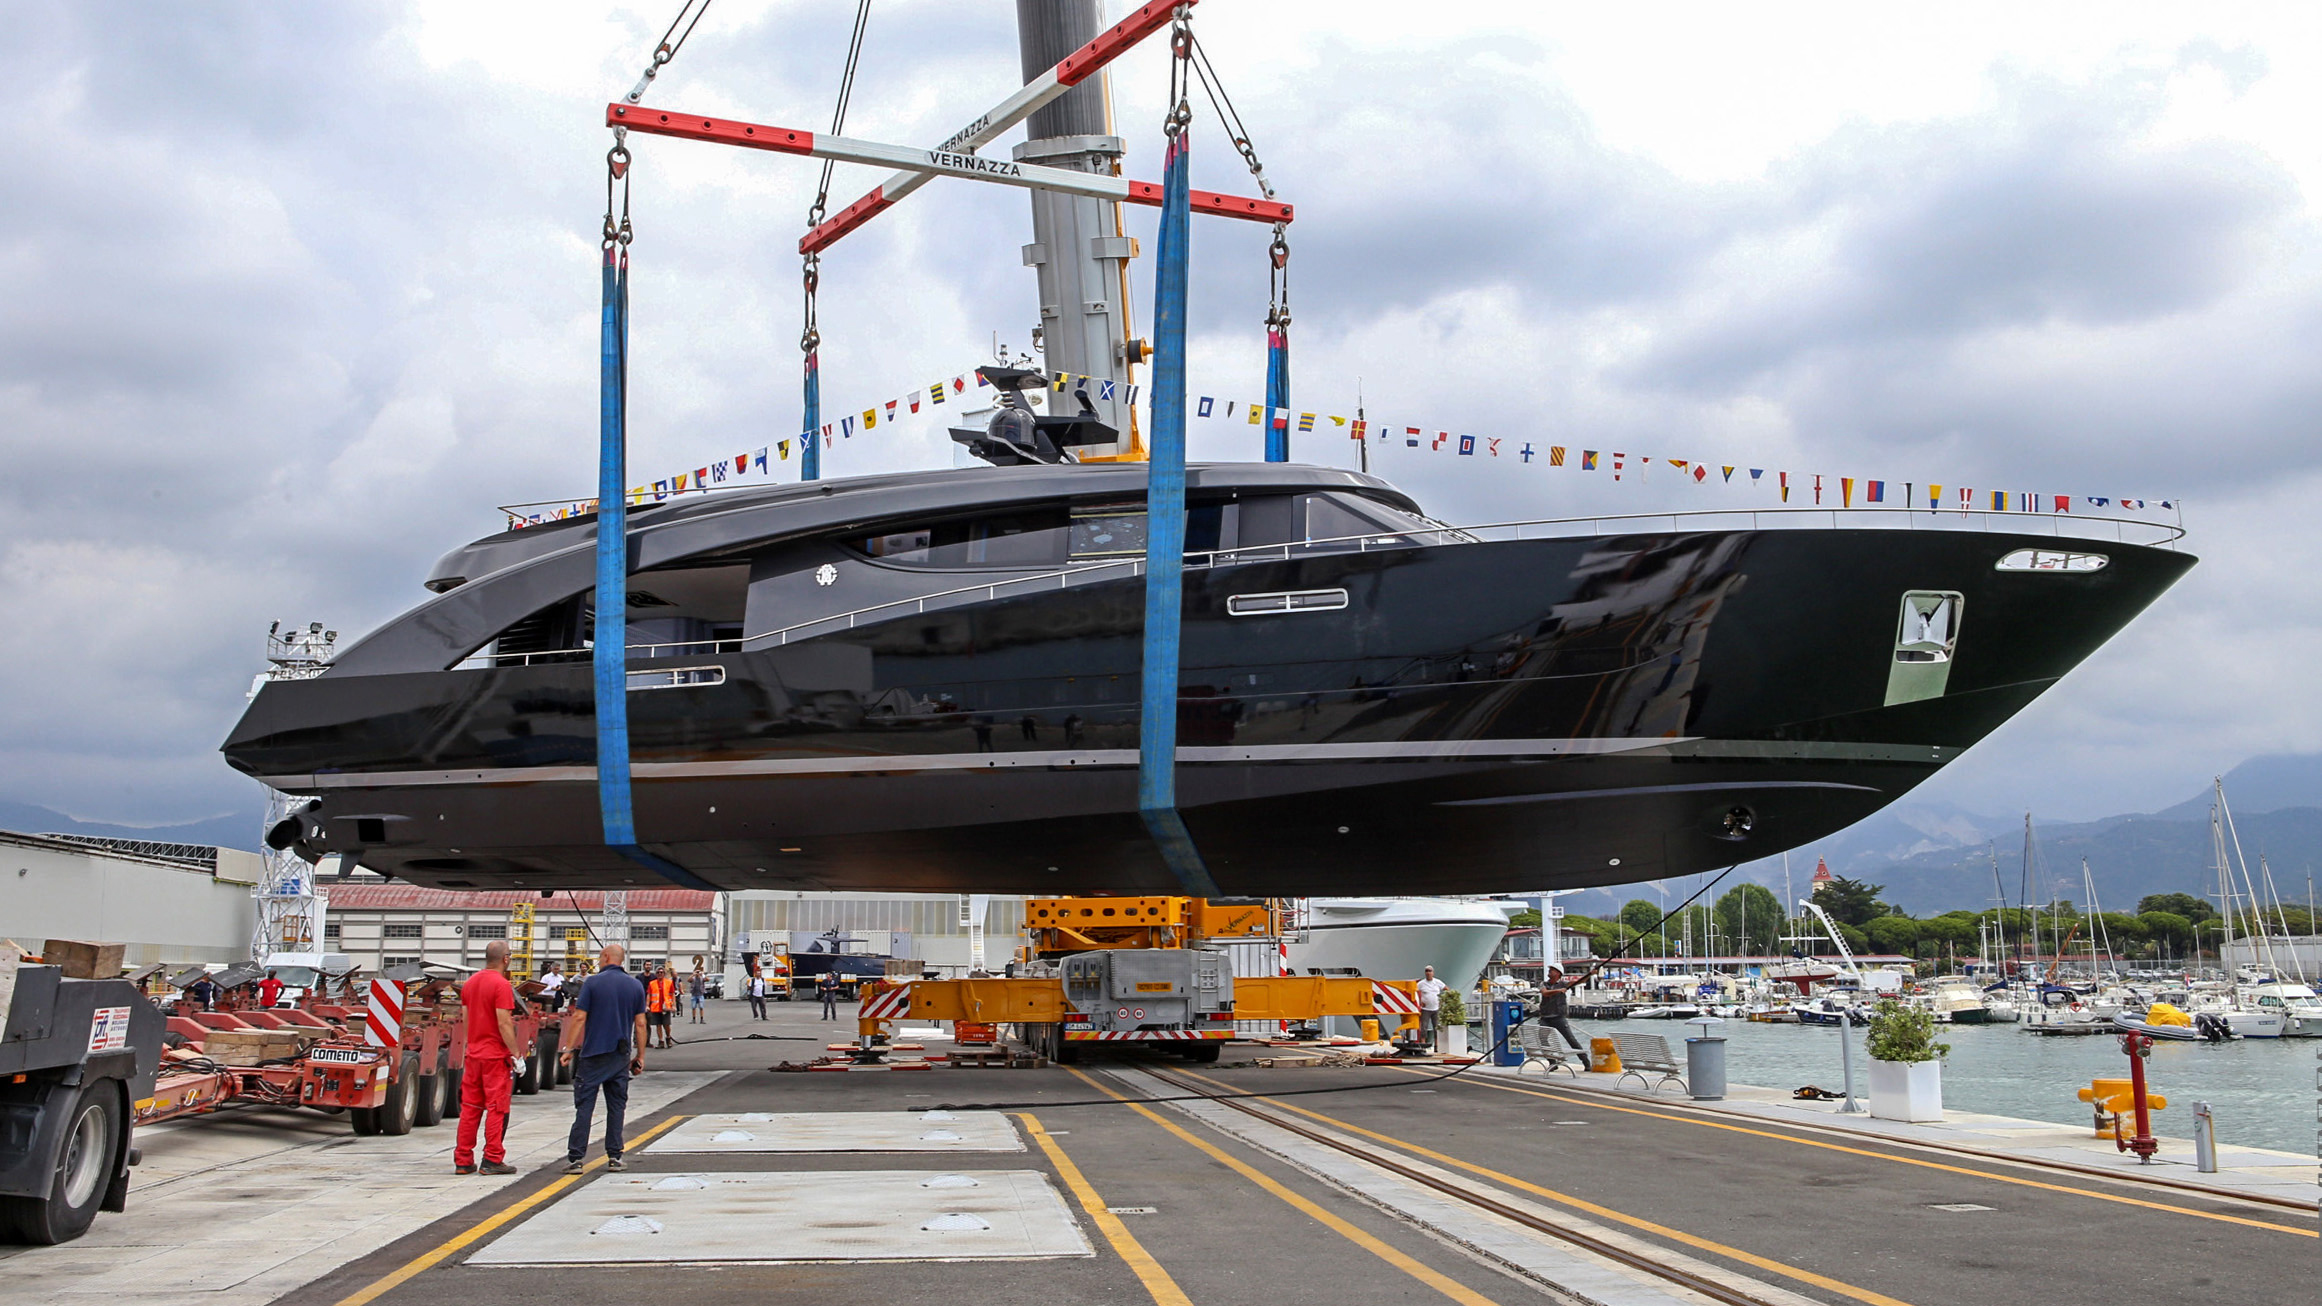 CCN launches 88 foot Freedom, fashion designer Roberto Cavalli's latest yacht